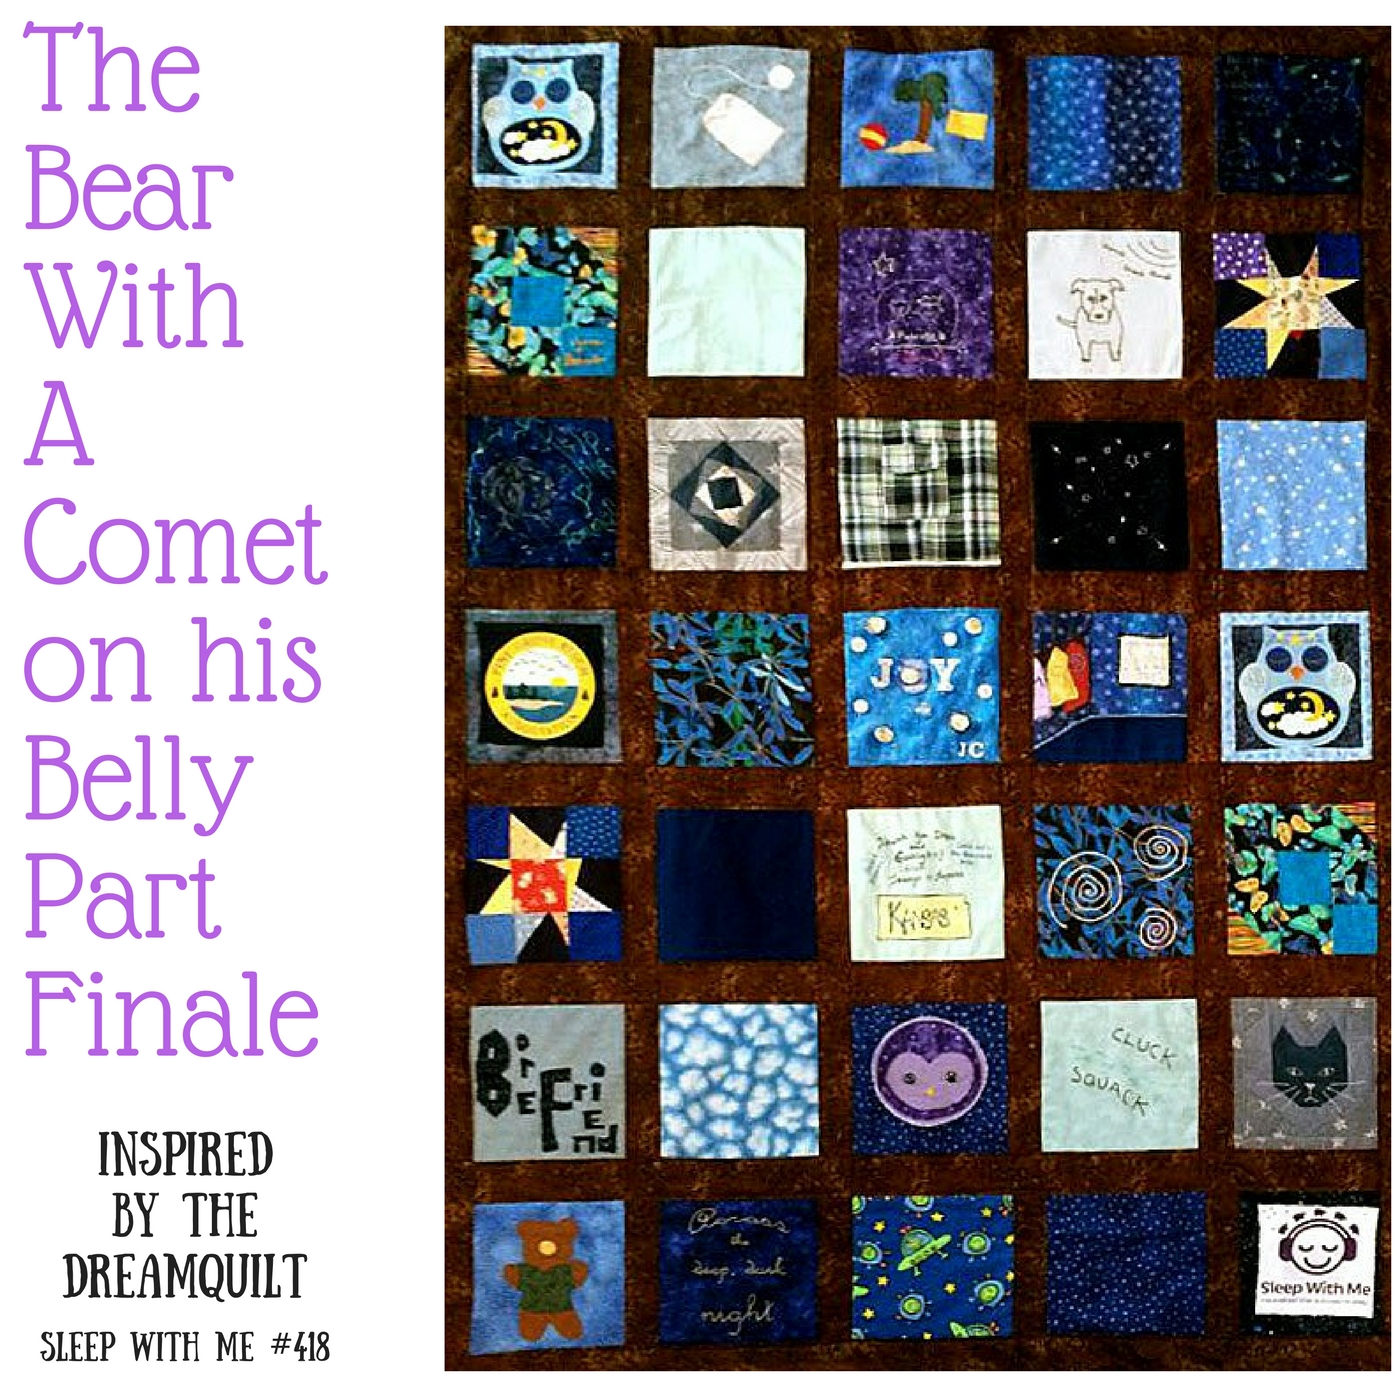 The Local Borefriend | The Bear With a Comet on his Belly | Dreamquilt Conclusion #418